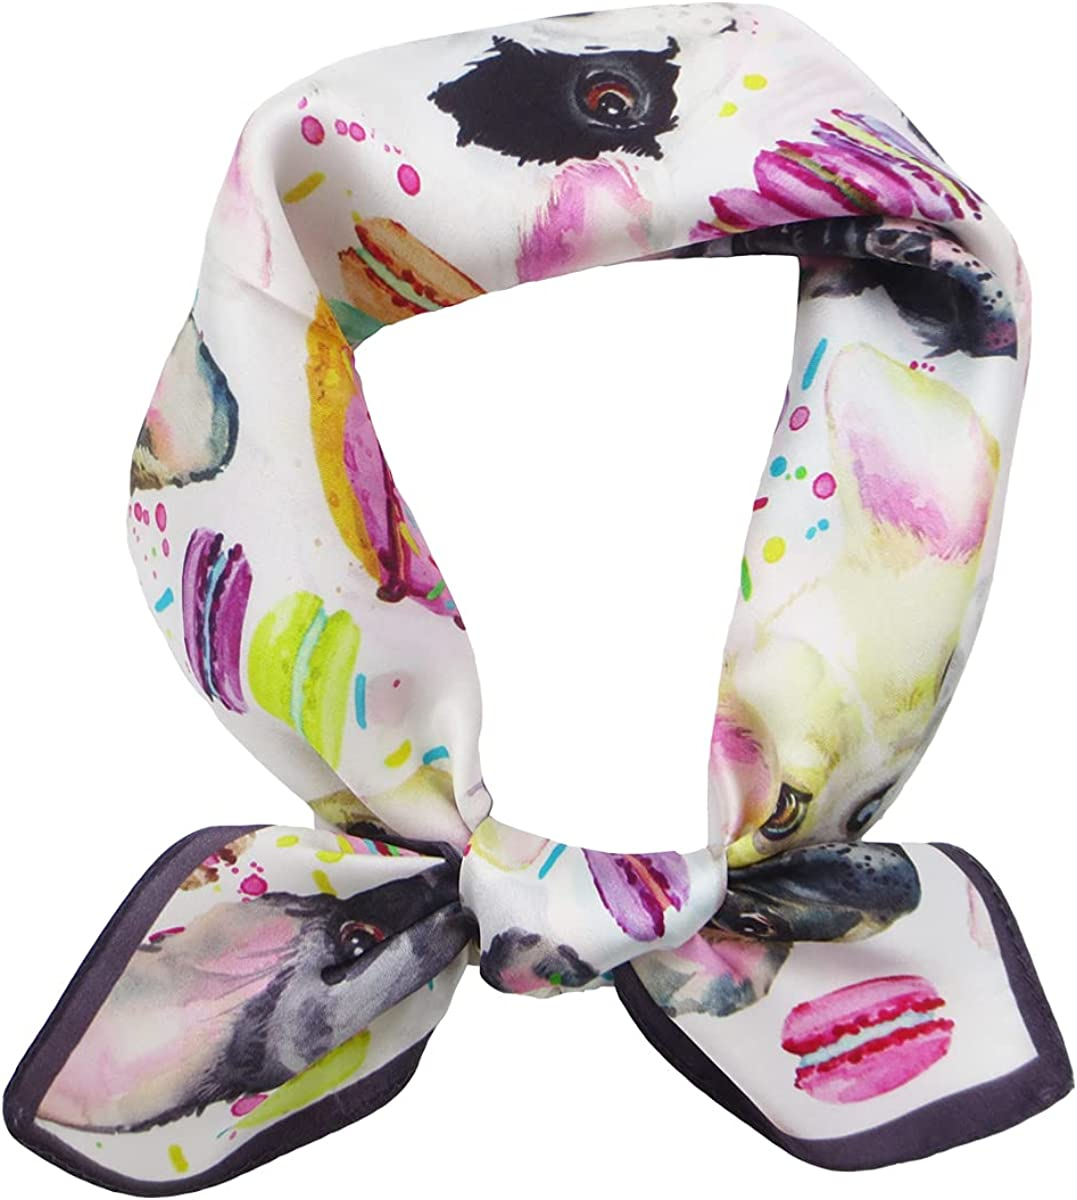 Women's 100% Pure Mulberry Manufacturer direct delivery Silk Scarf Neckerchief Square Max 44% OFF - Small